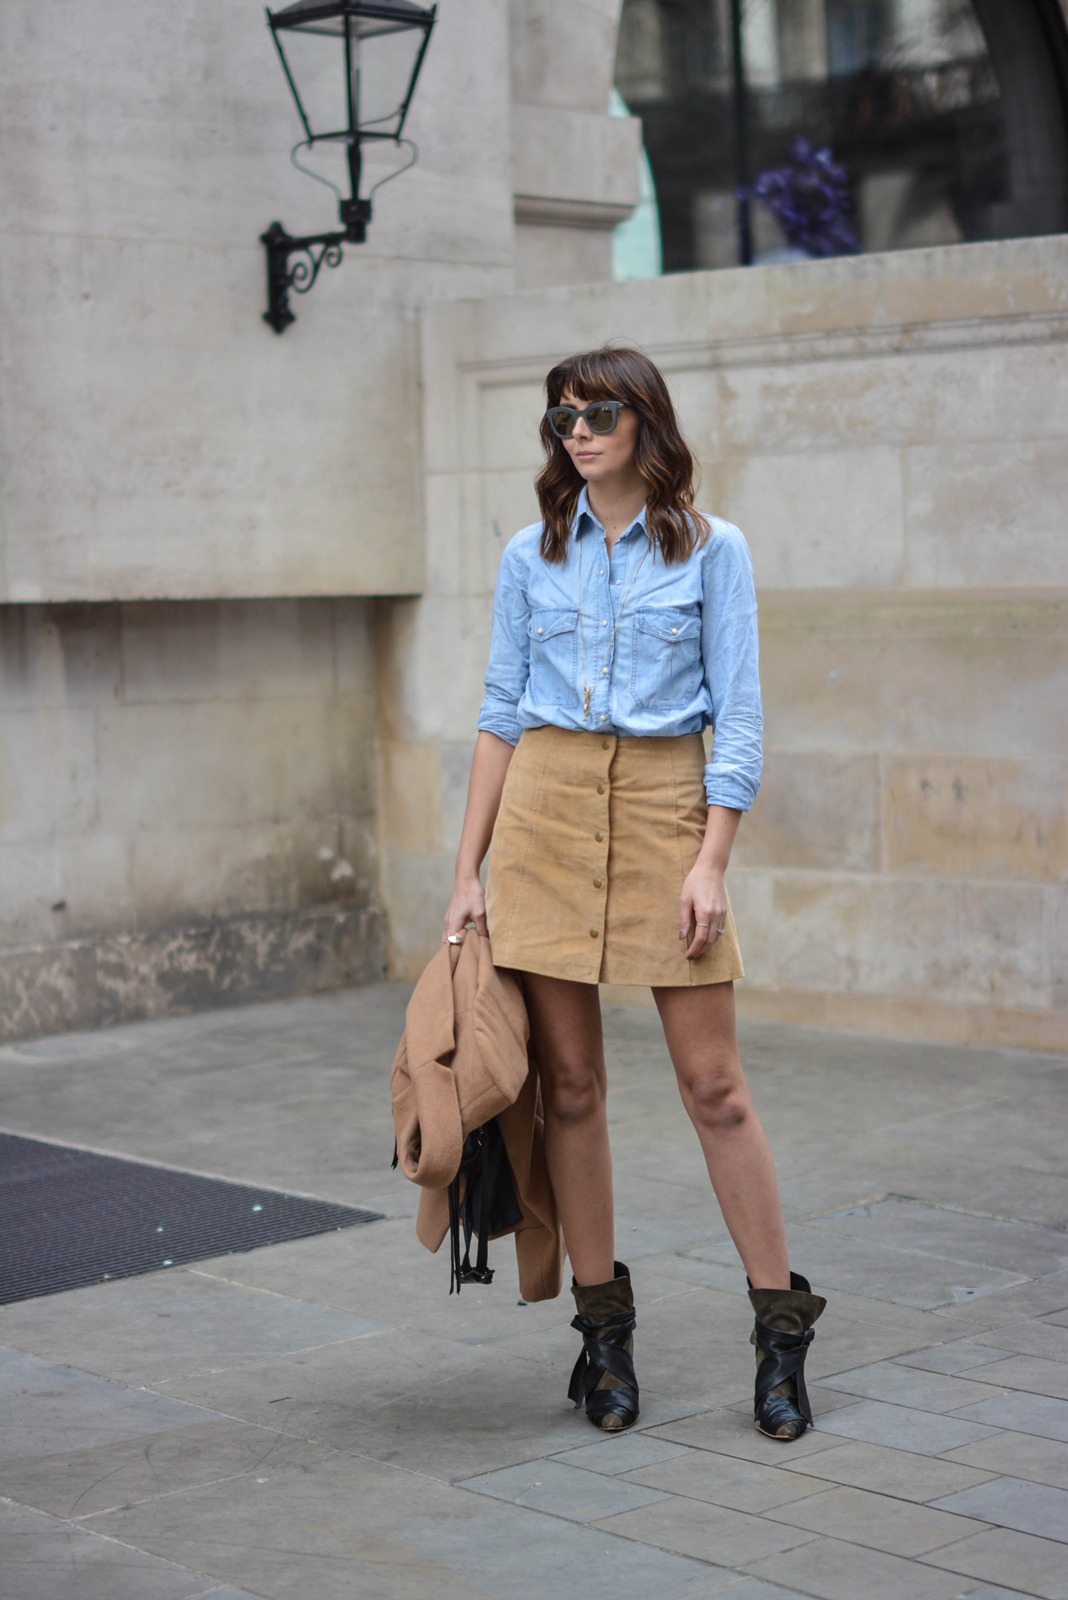 EJSTYLE - Emma Hill, Stella McCartney Sunglasses, denim shirt, camel coat, suede popper skirt miss selfridge, 70s style, Isabel Marant boots, street style, OOTD